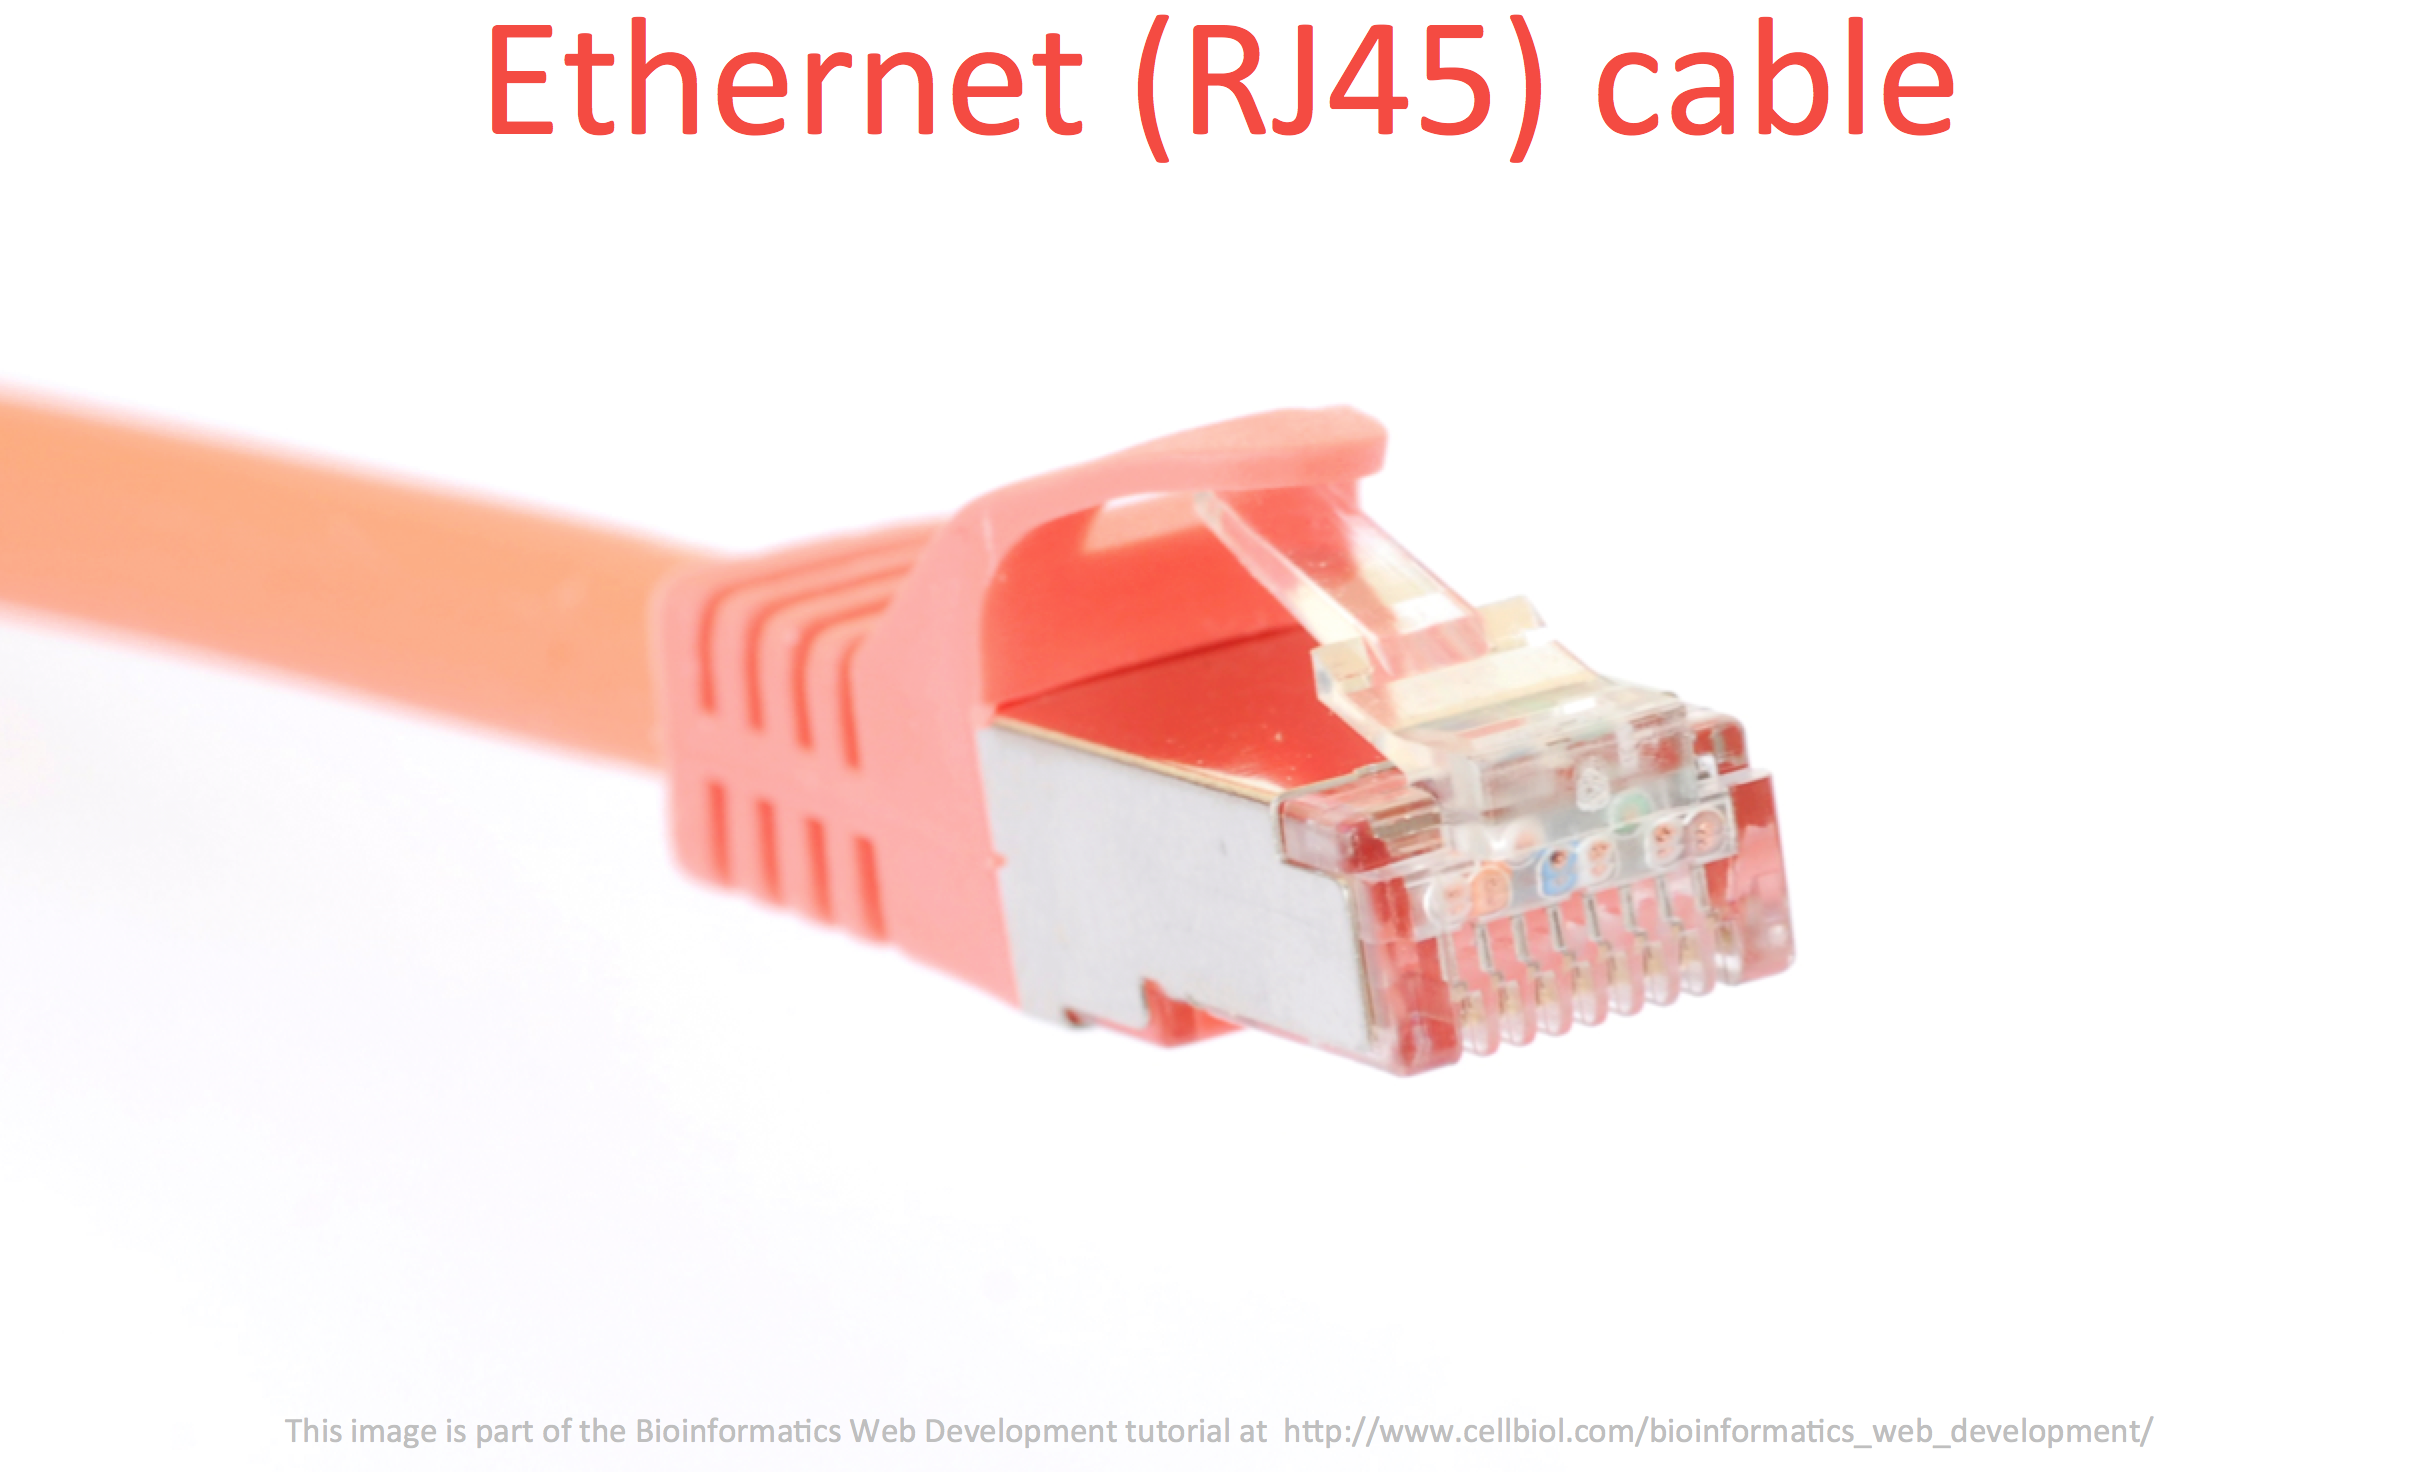 An ethernet cable. This kind of plug is known as RJ45